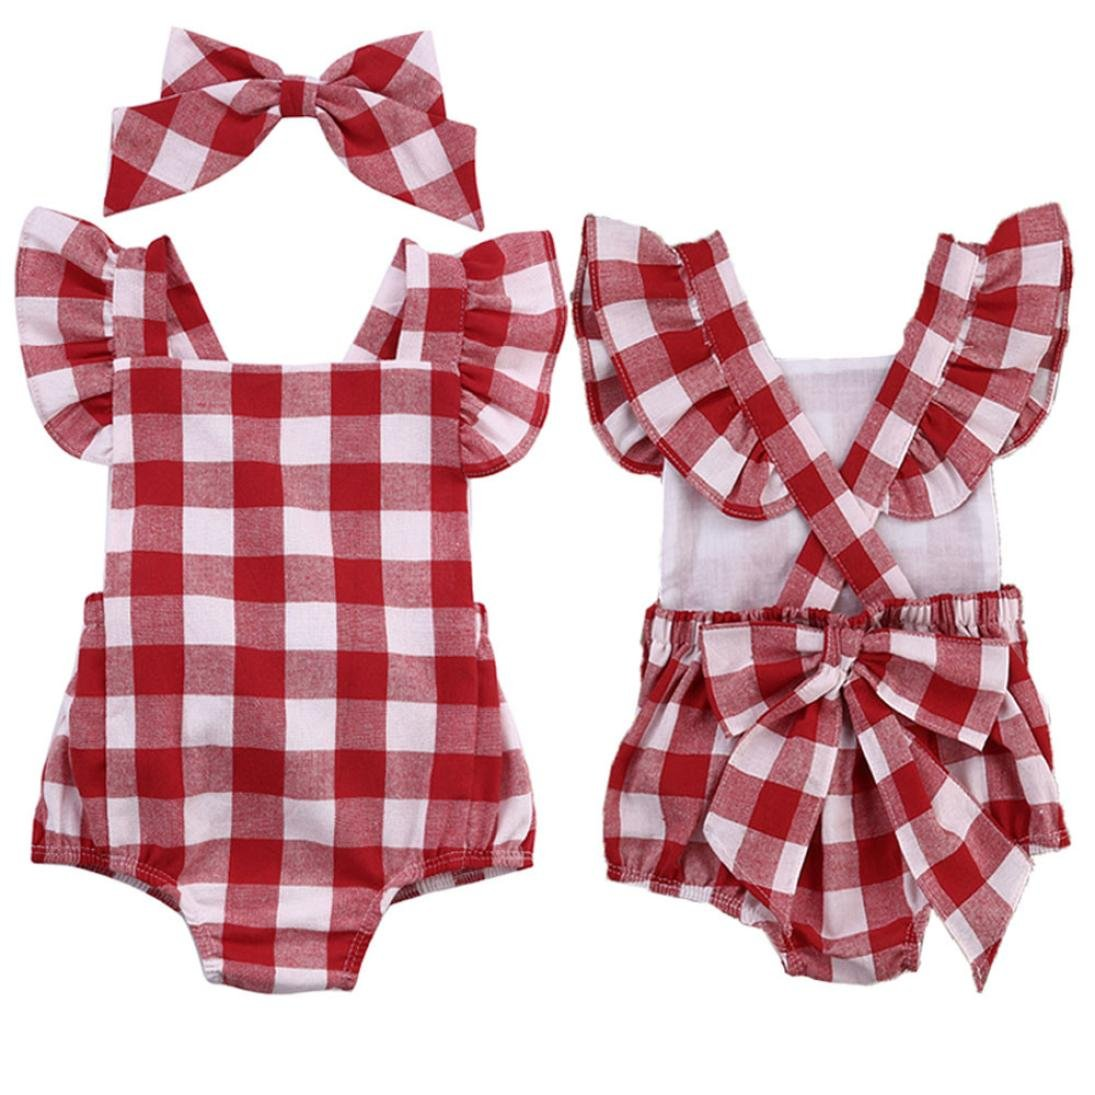 Yoyorule Newborn Baby Girl Sleeveless Cotton Plaid Romper Jumpsuit Outfits